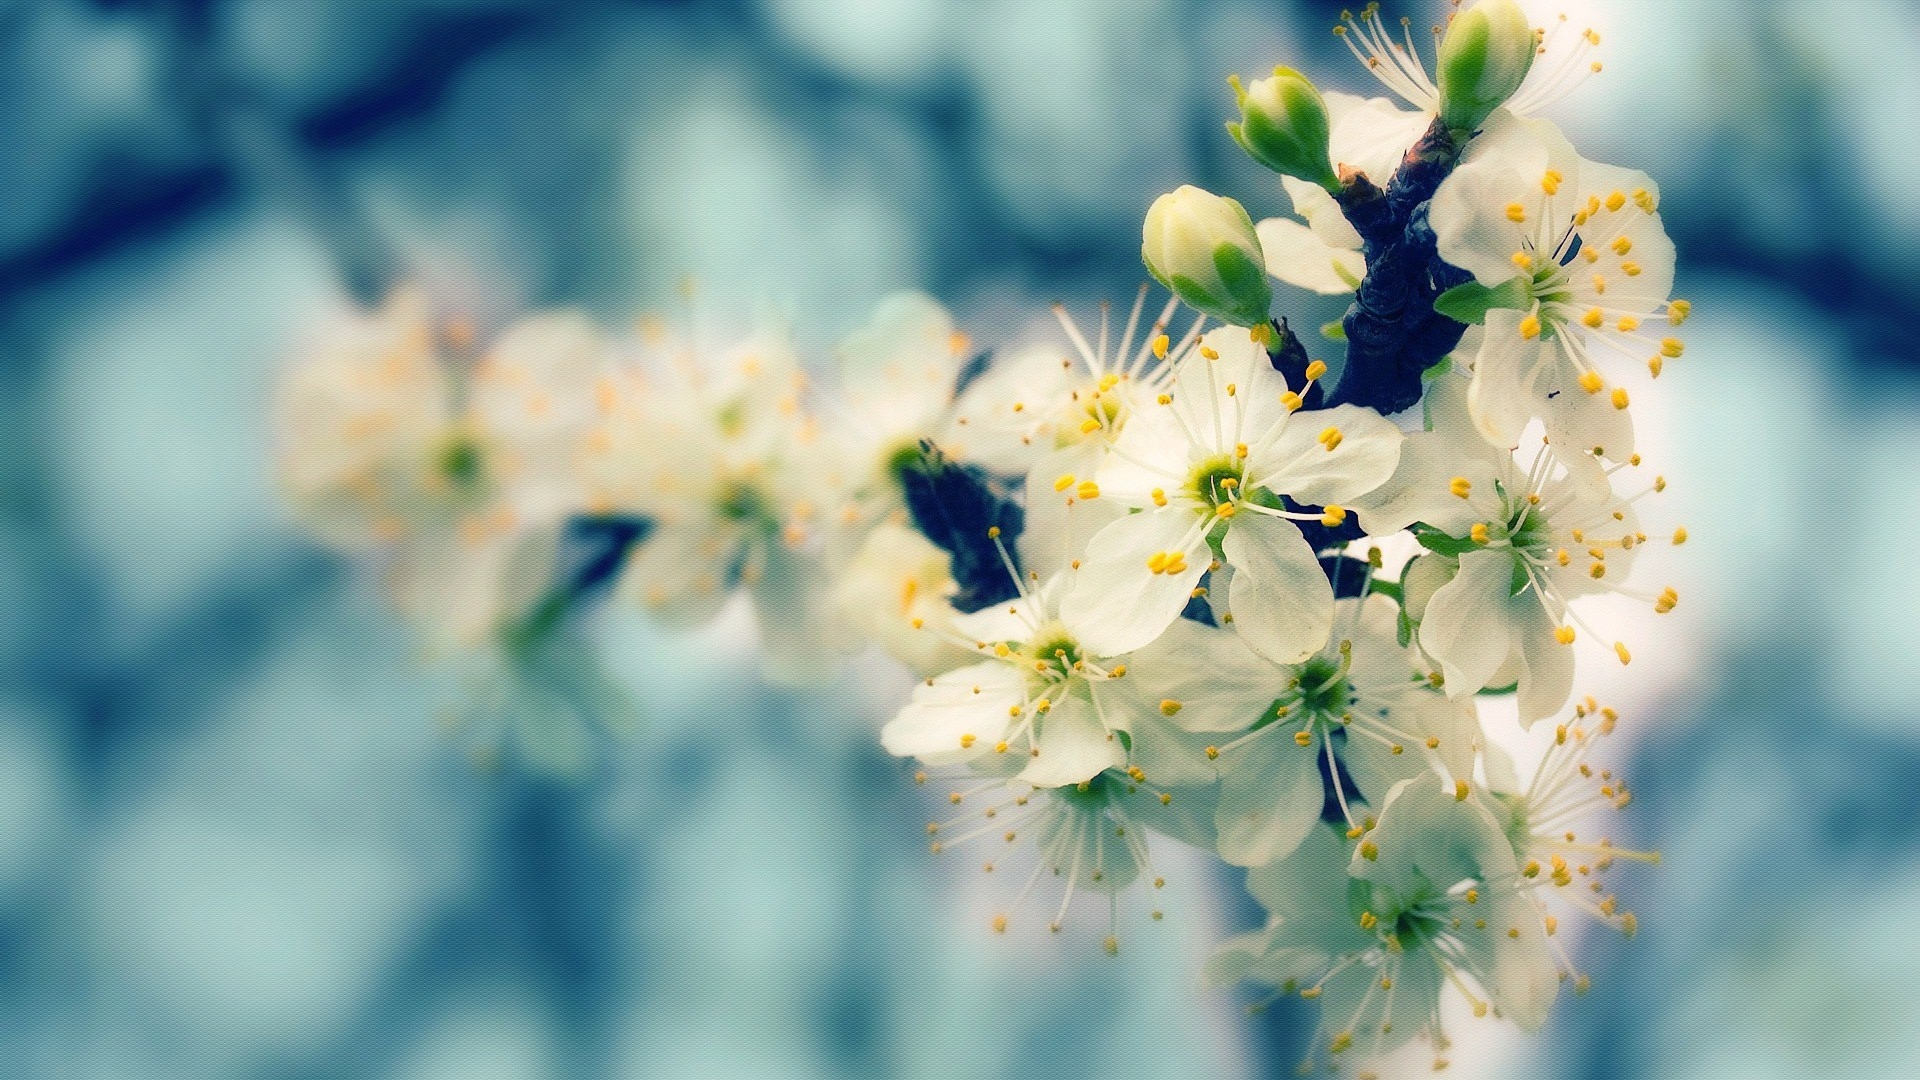 blooming spring glare wallpaper background